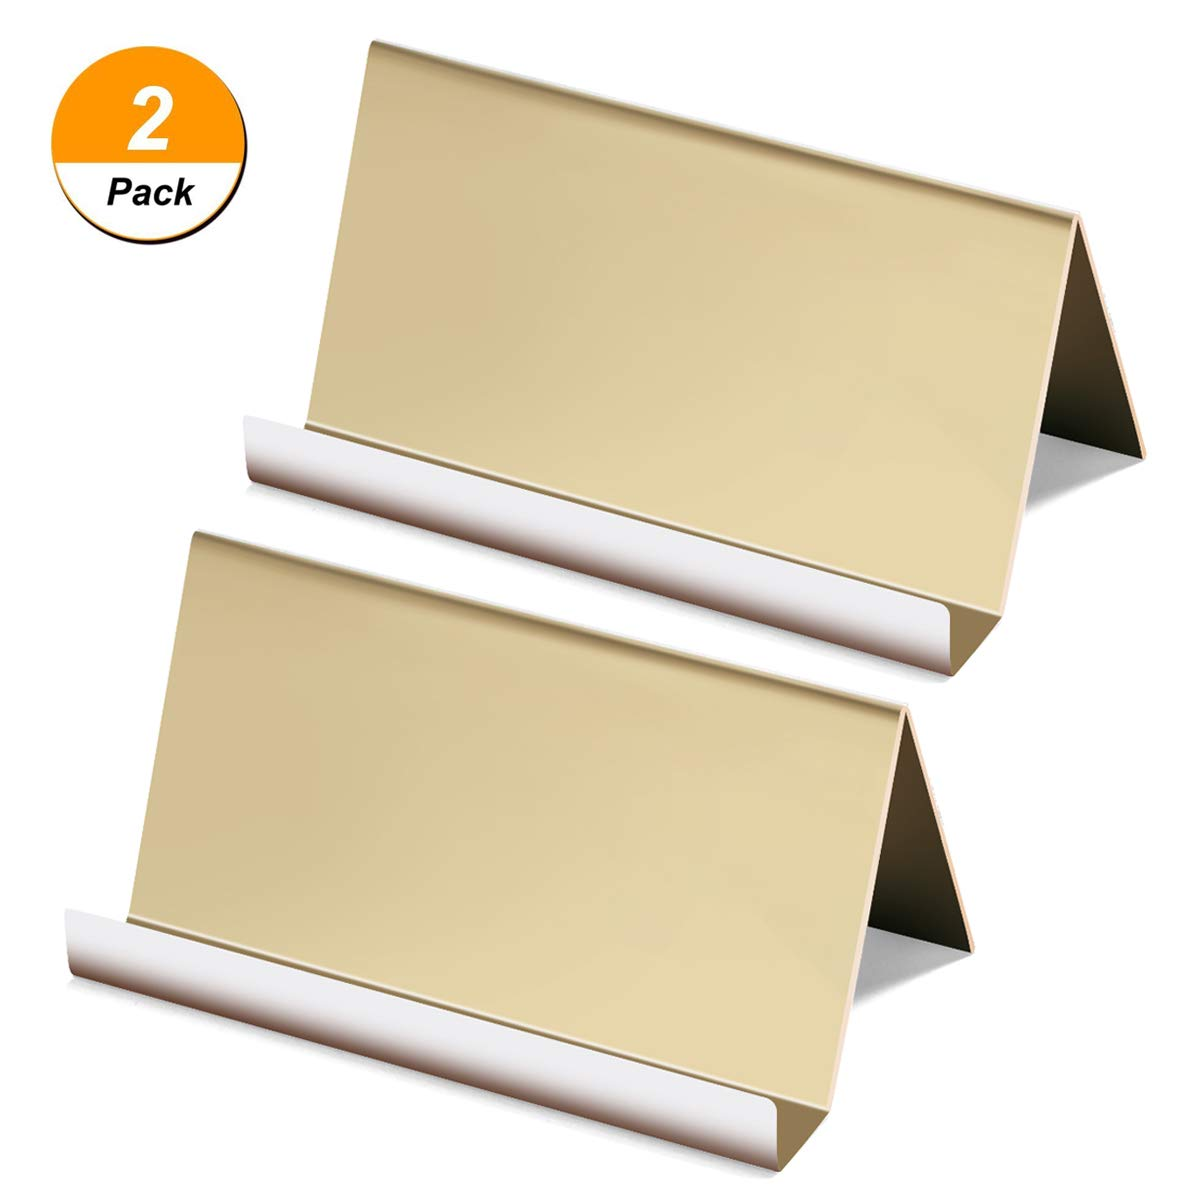 2 Packs Business Card Holders,Nipole Desktop Business Cards Display Rack,High-end Business Card Organizer for Office Business (Champagne Gold)